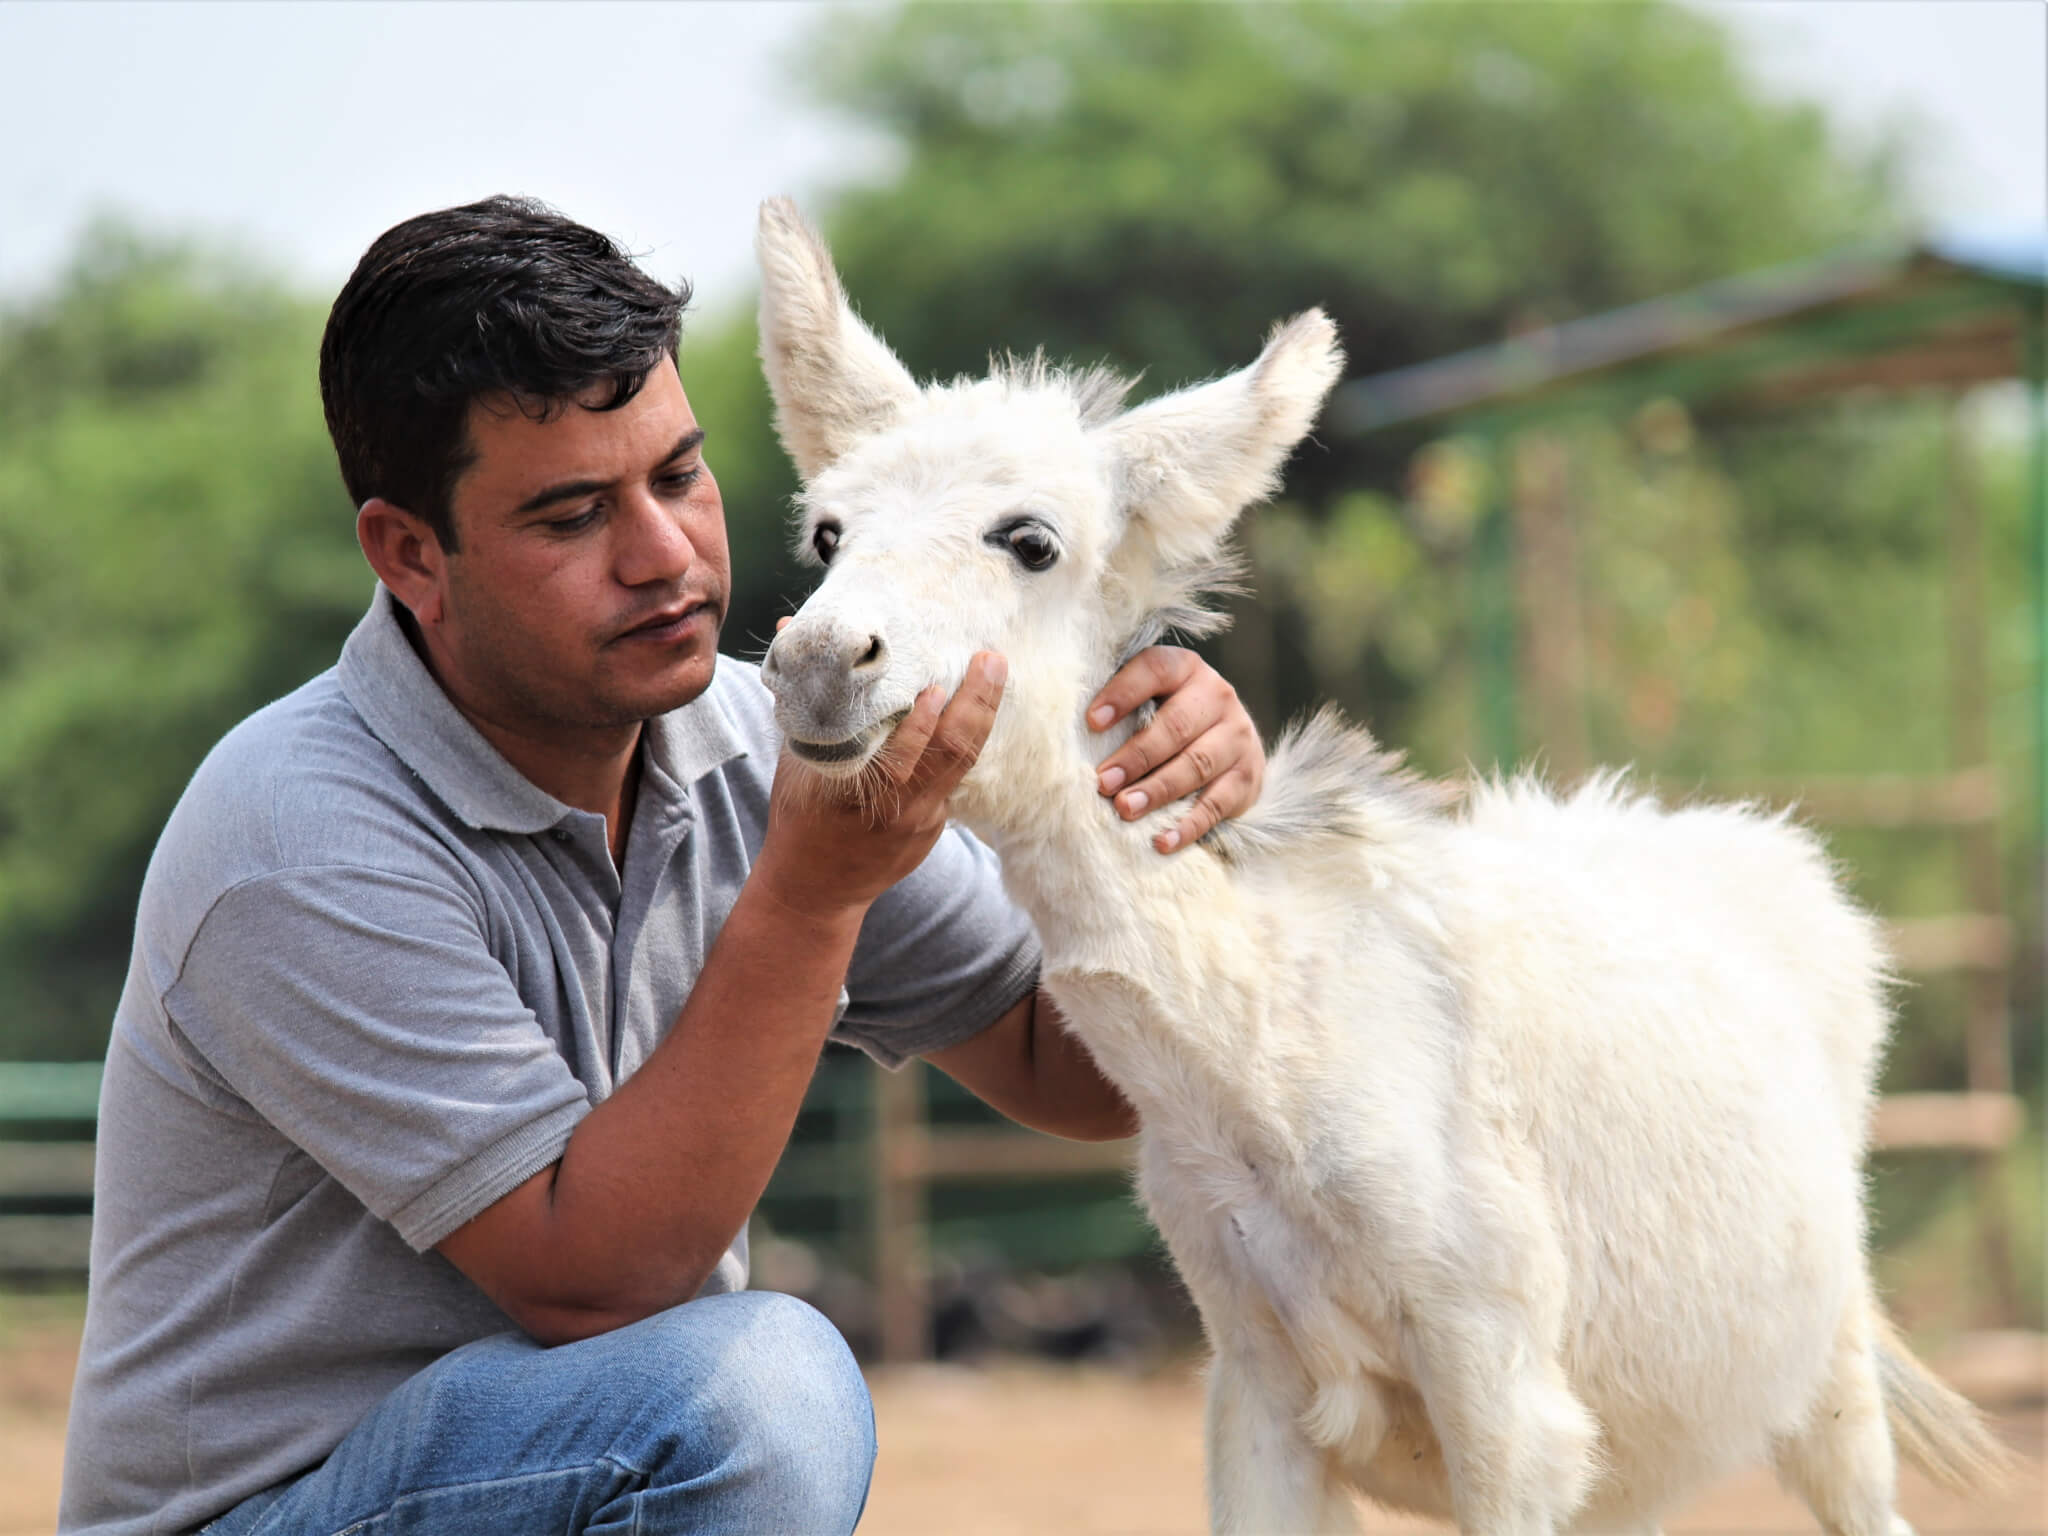 Dr. Rakesh Chittora shows affection to a donkey foal.